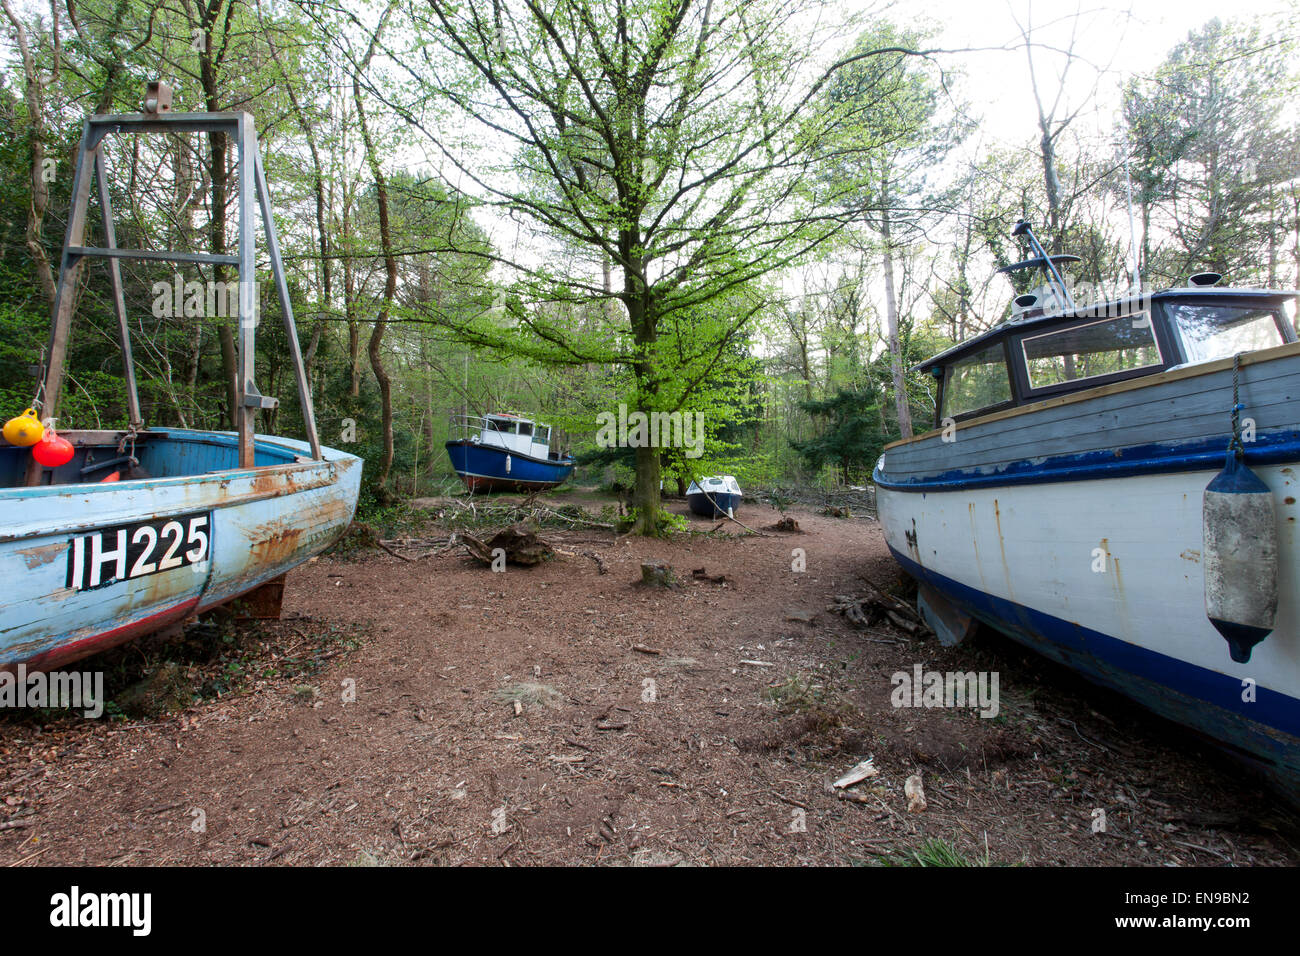 The abandoned fishing boats at Leigh Woods, Bristol forming the Withdrawn Art Exhibition by Luke Jerram. - Stock Image